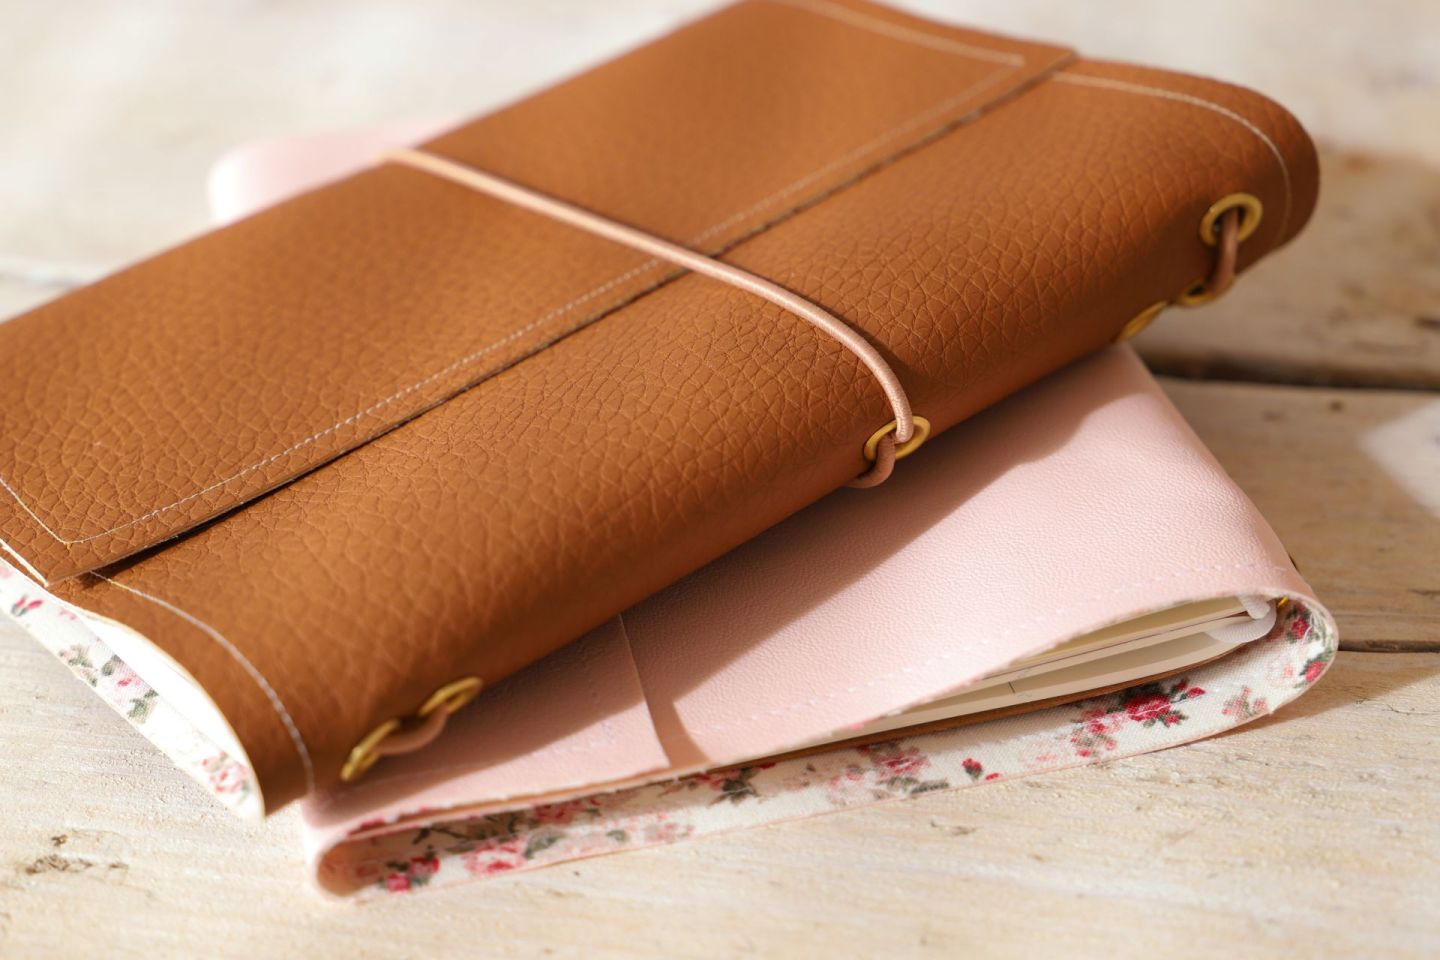 DIY midori style travellers notebook